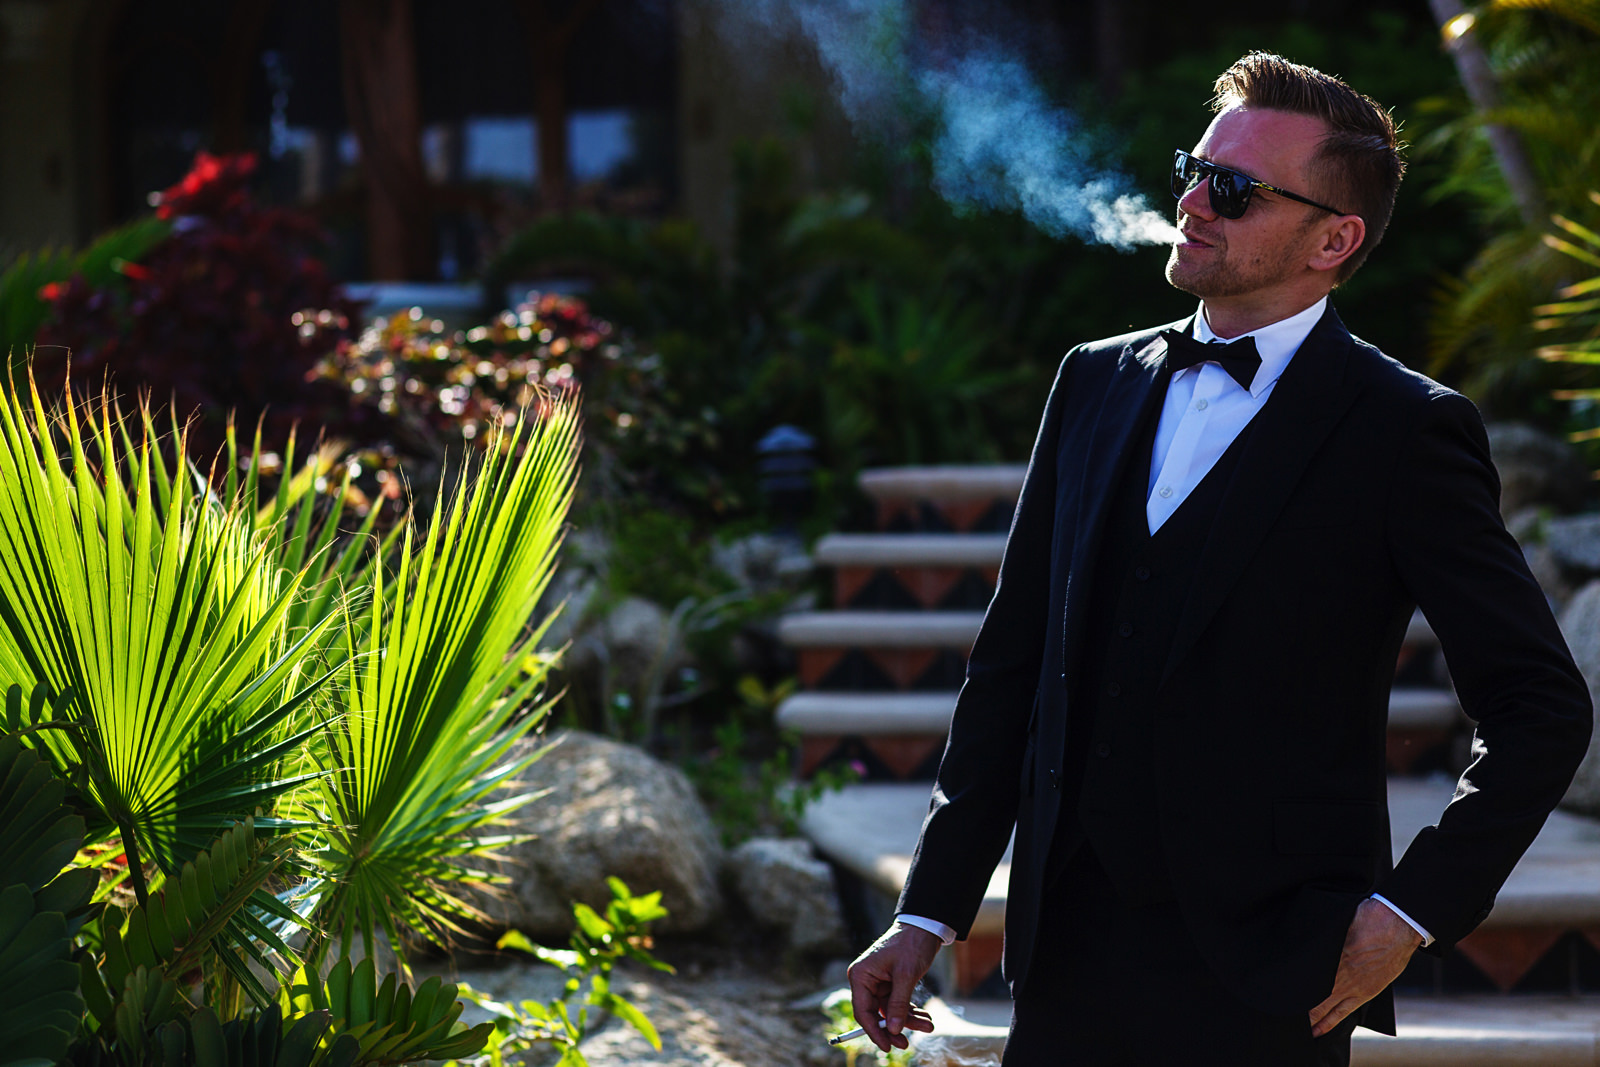 Groom smoking a cigarette wearing a tuxedo